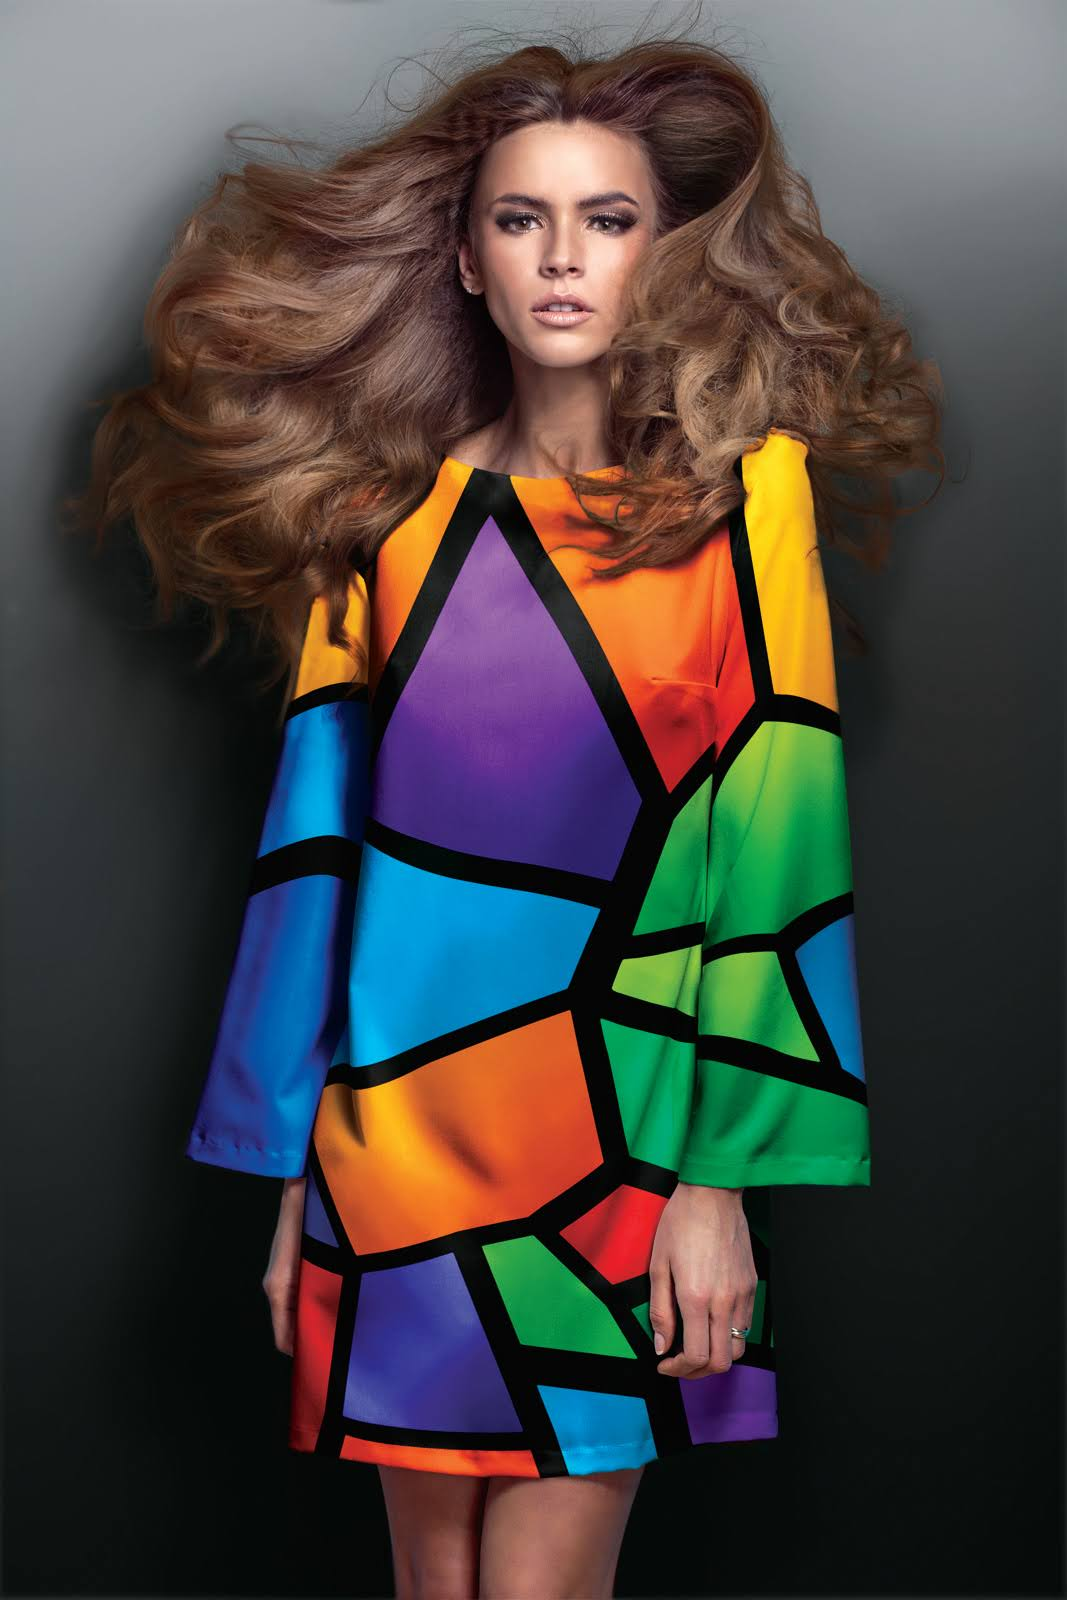 Digital textile printing allows brands to bring new designs to market faster.